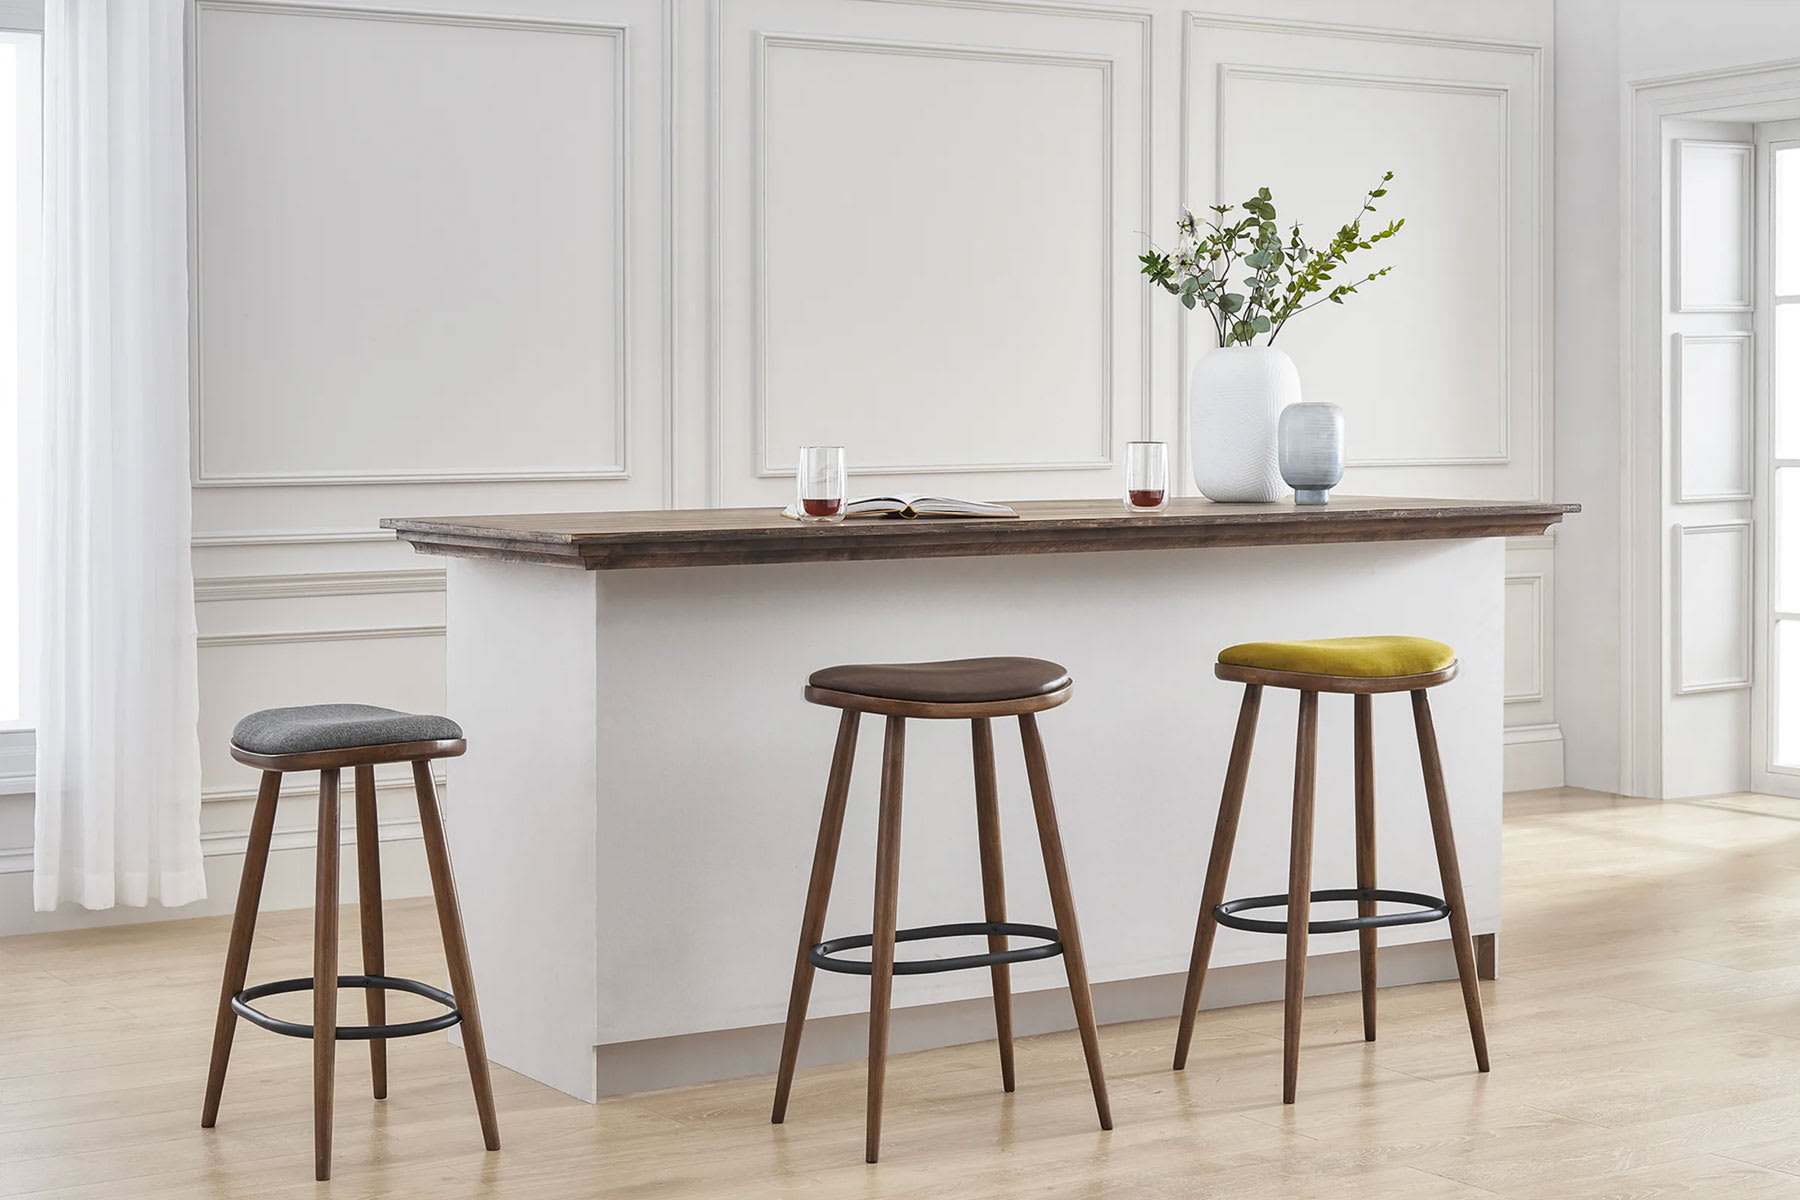 Mid-century modern home bar with bar and counter stool